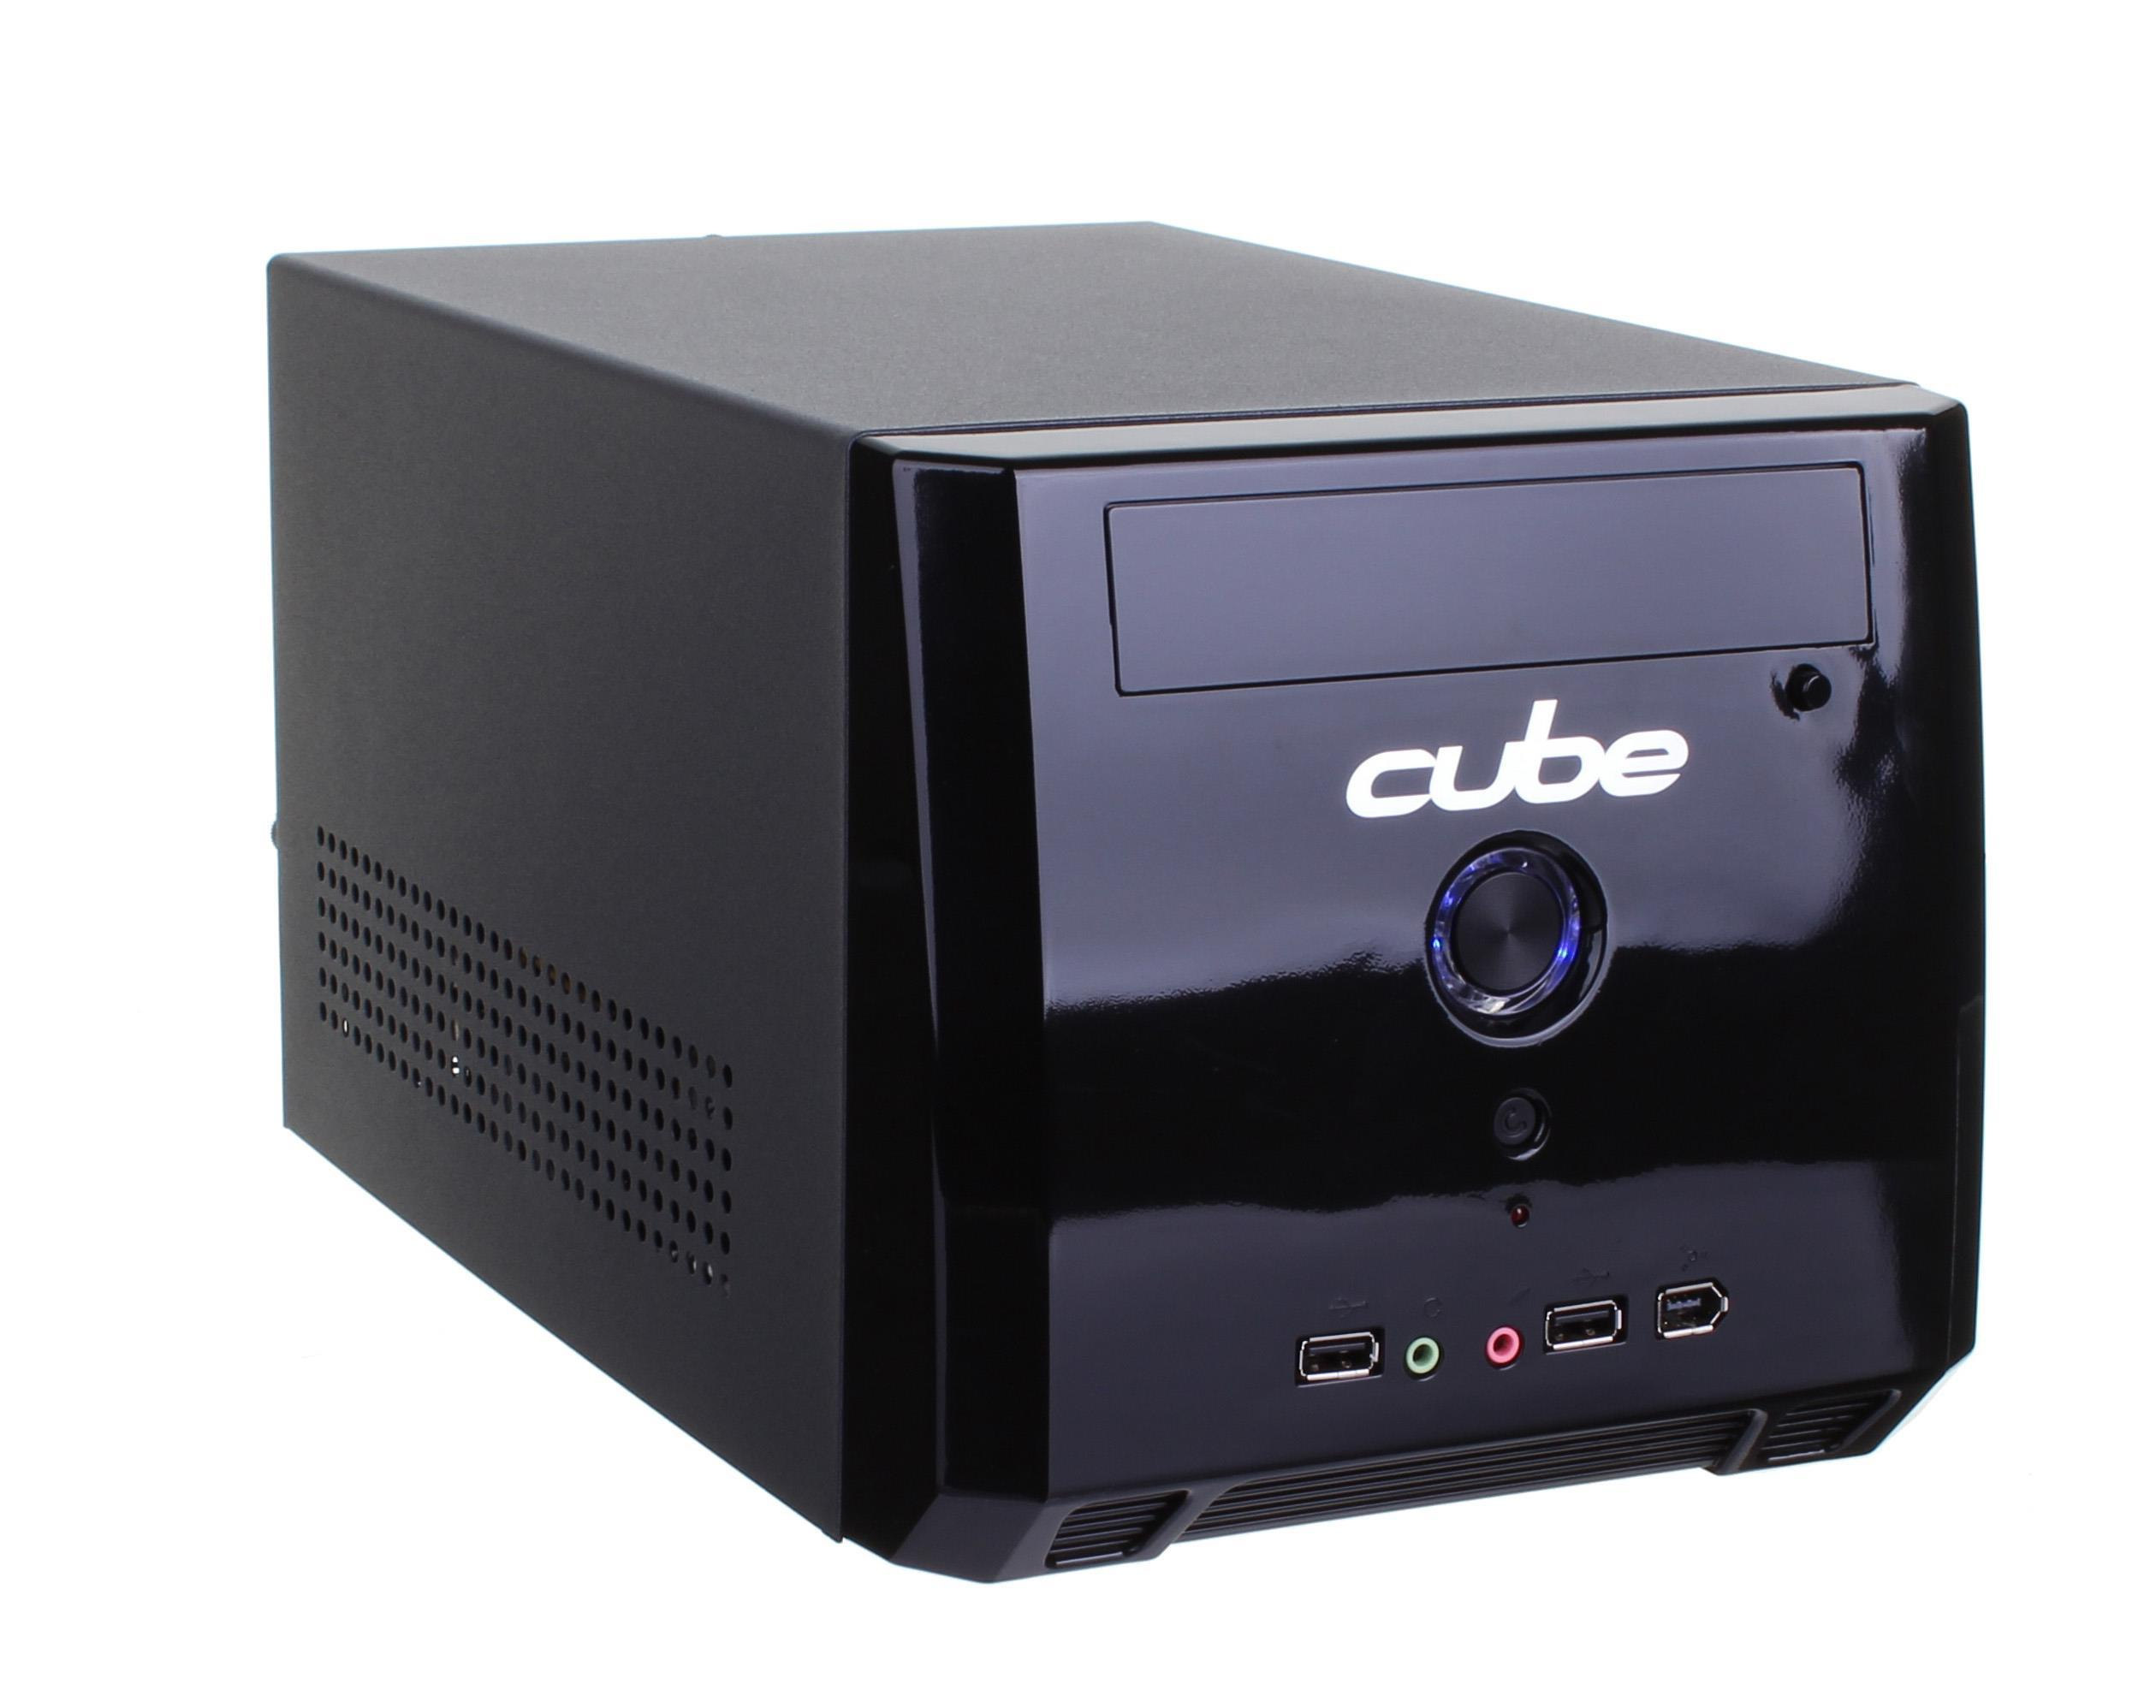 Cube Ace AMD Quad Core with R3 Graphics Mini PC ideal for Minecraft 500Gb HDD & 4Gb RAM and Windows 8.1 Bing Installed!